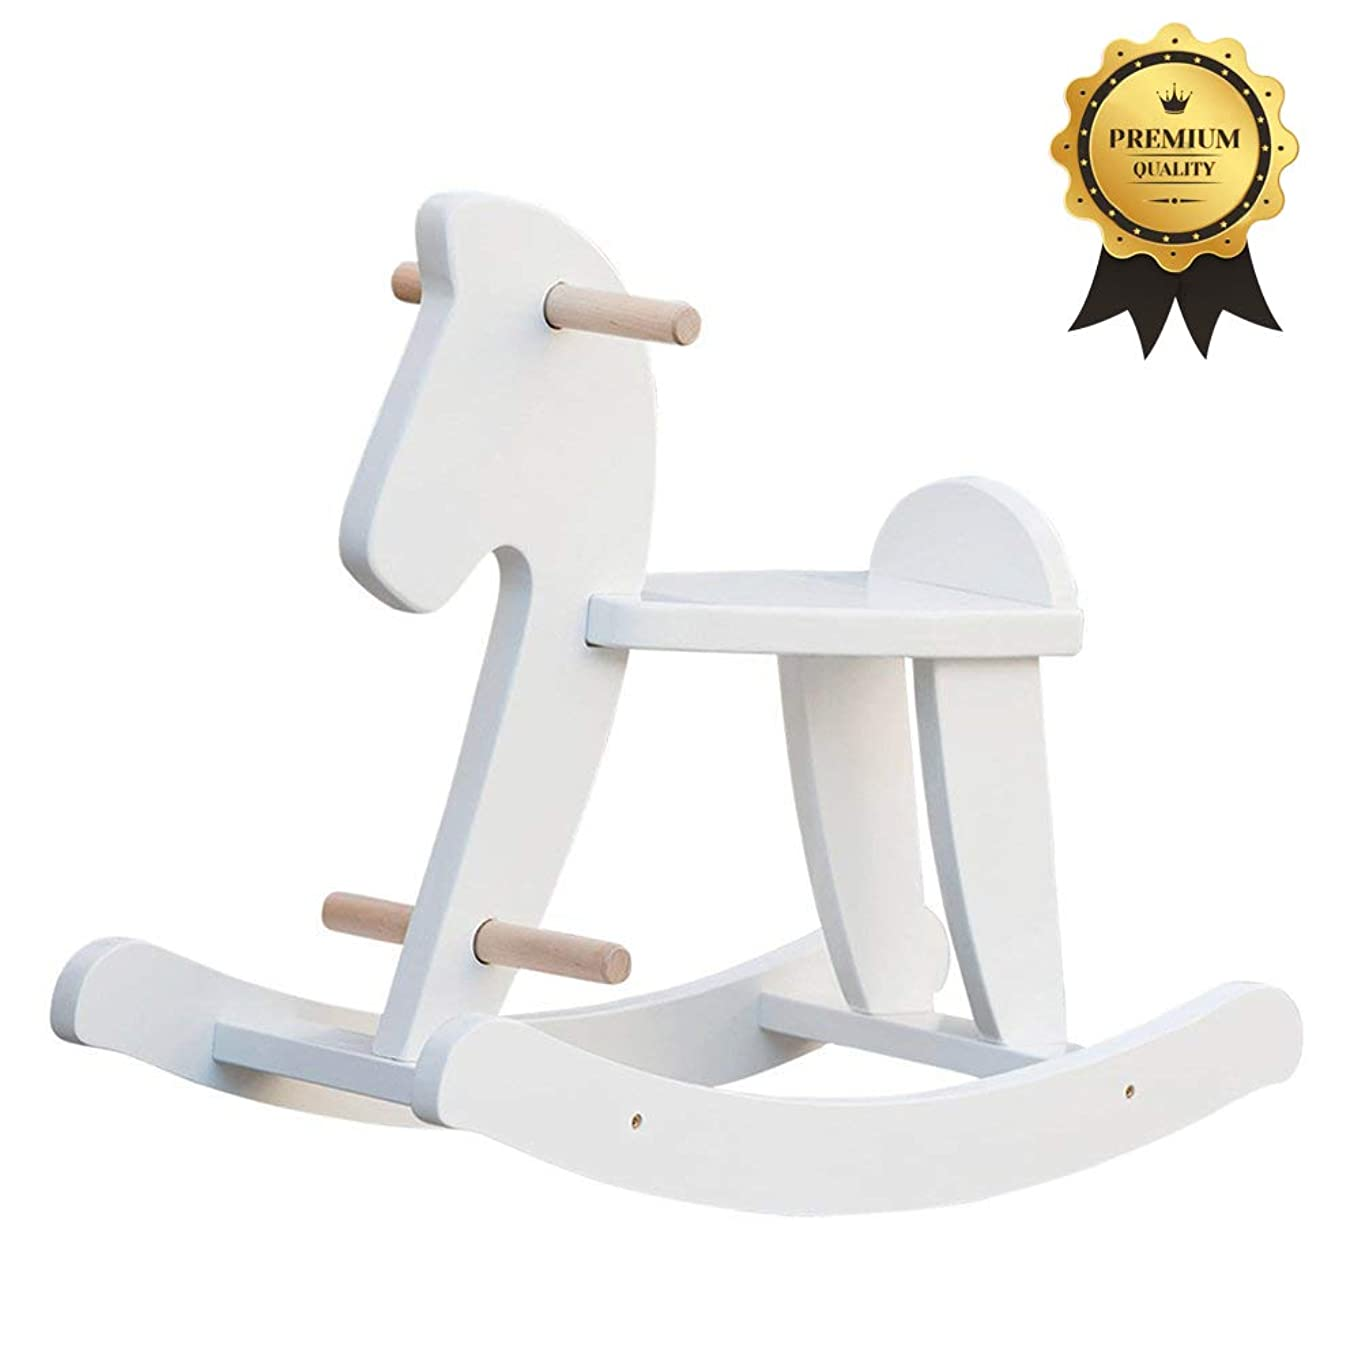 labebe - Wooden Rocking Horse, Baby Wood Ride On Toys for 1-3 Year Old, White Rocker Toy for Kid, Toddler Ride Animal Indoor/Outdoor, Boy&Girl Rocking Animal, Infant Ride Toy, Christmas/Birthday Gift